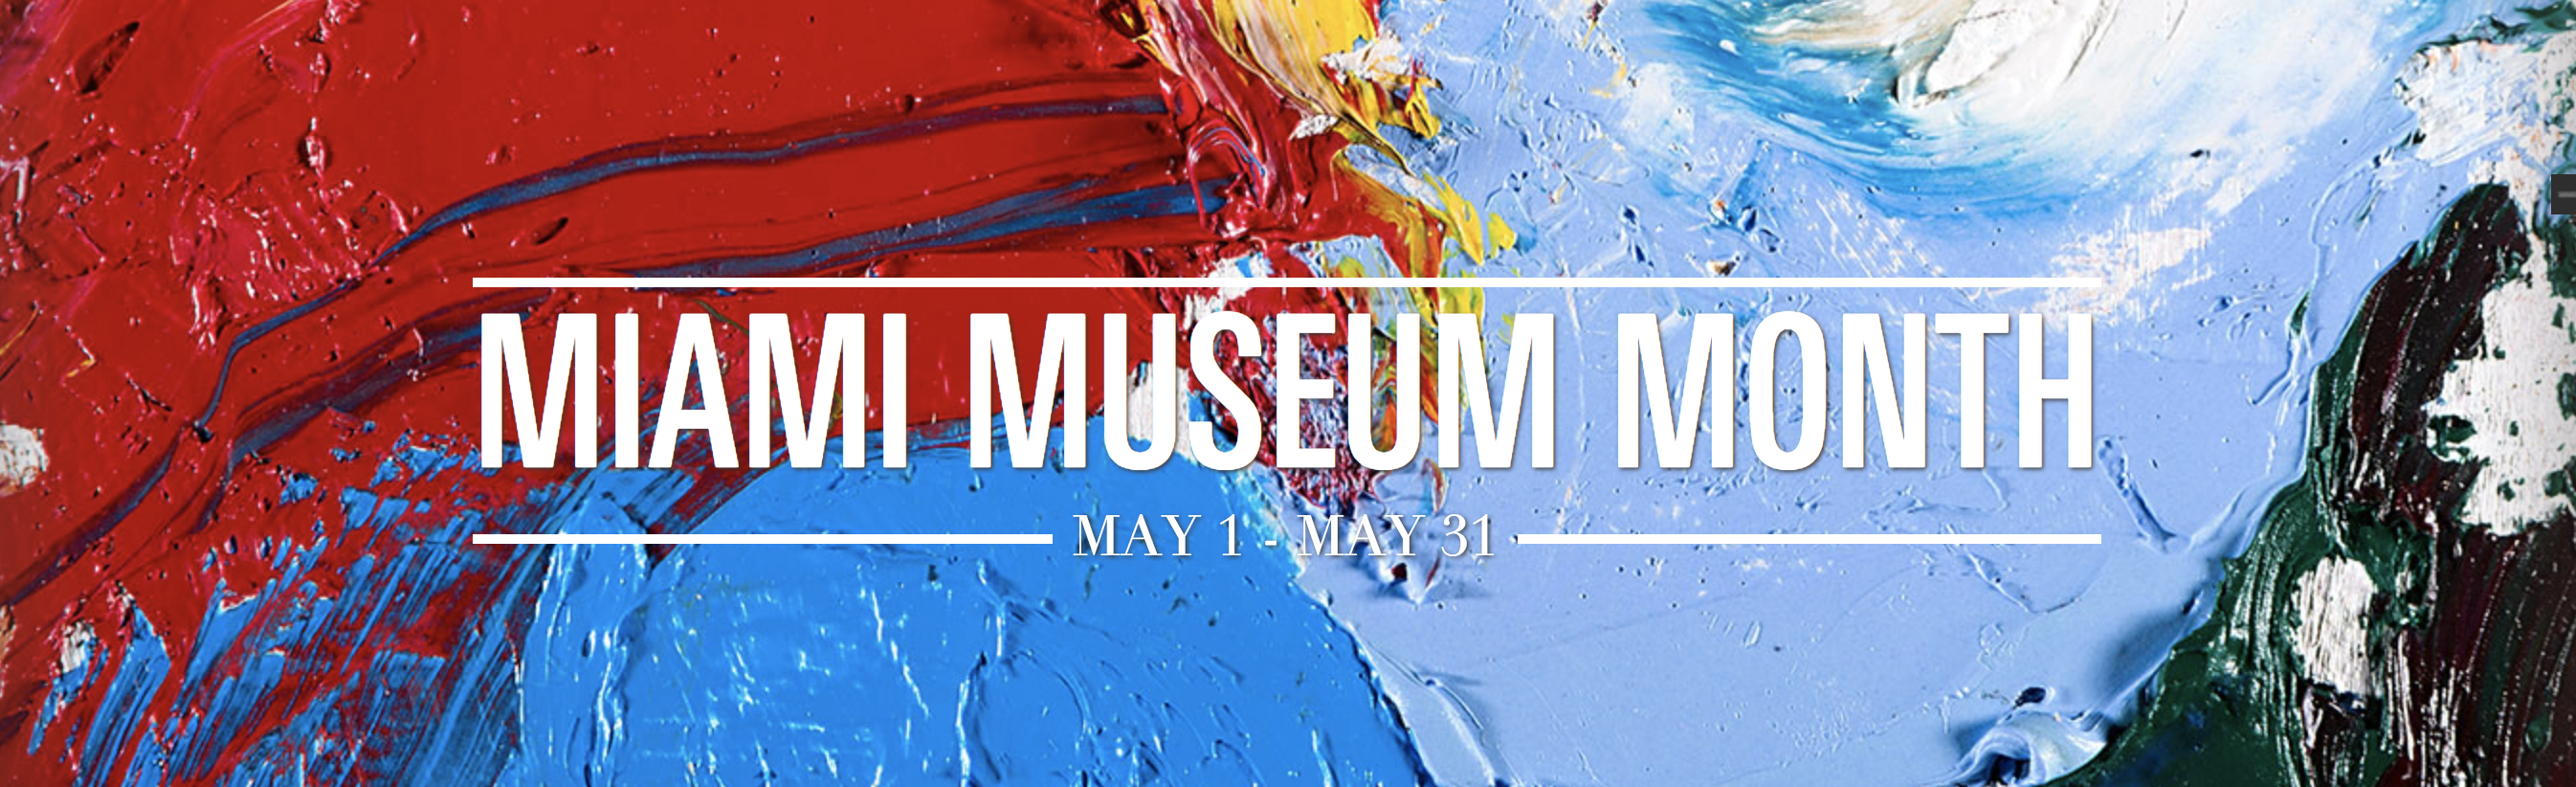 Paint splash background that says Miami Museum Month text on top.